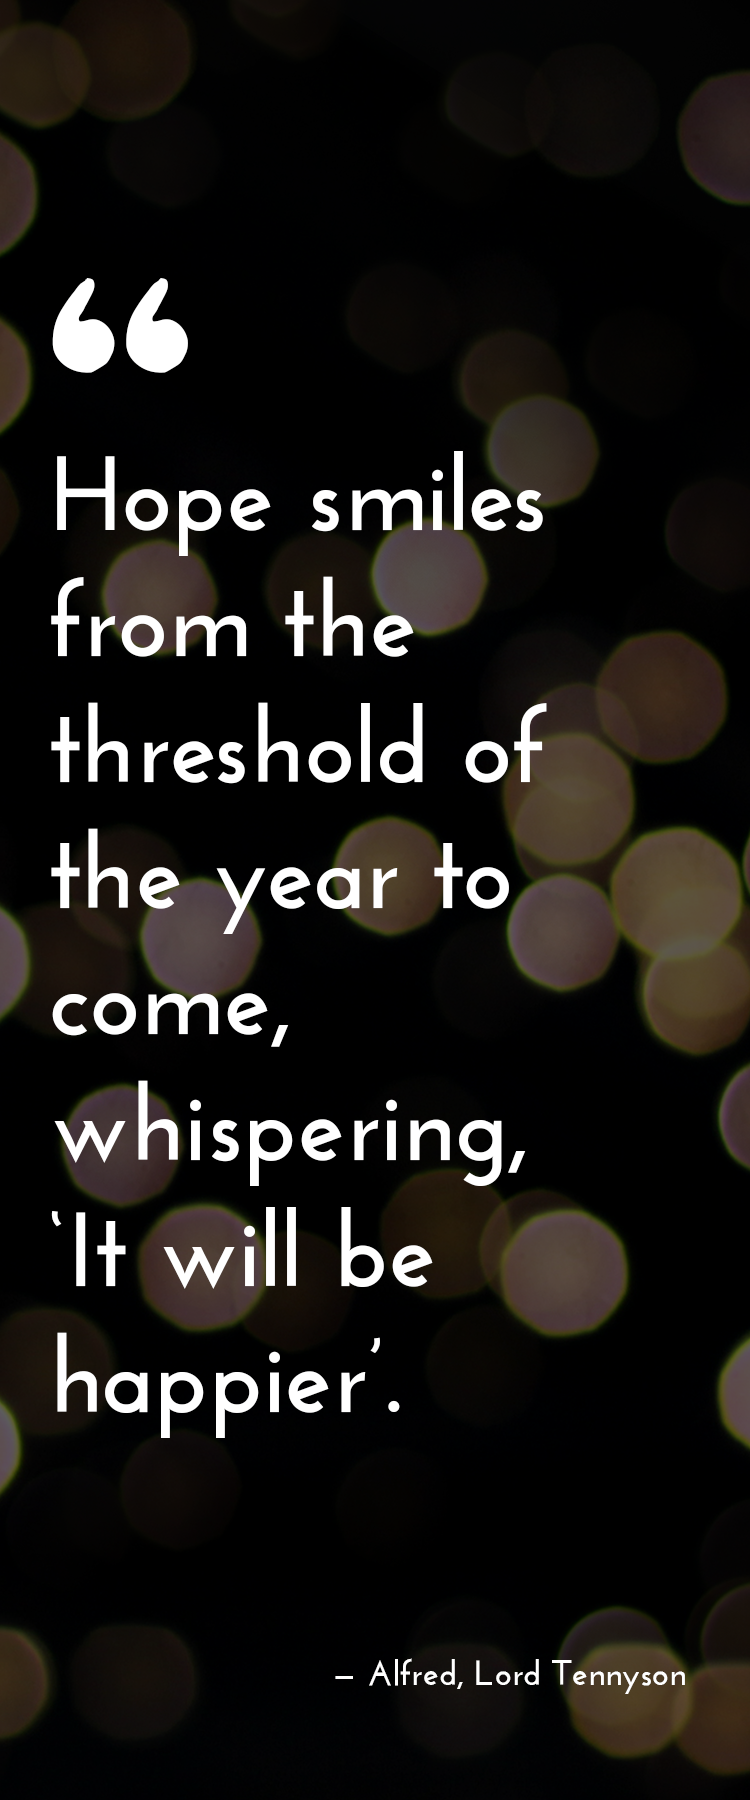 Inspirational Quotes New Years Eve Quotes Alfred Lord Tennyson New Years Eve Quotes Inspirational Quotes Quotes About New Year